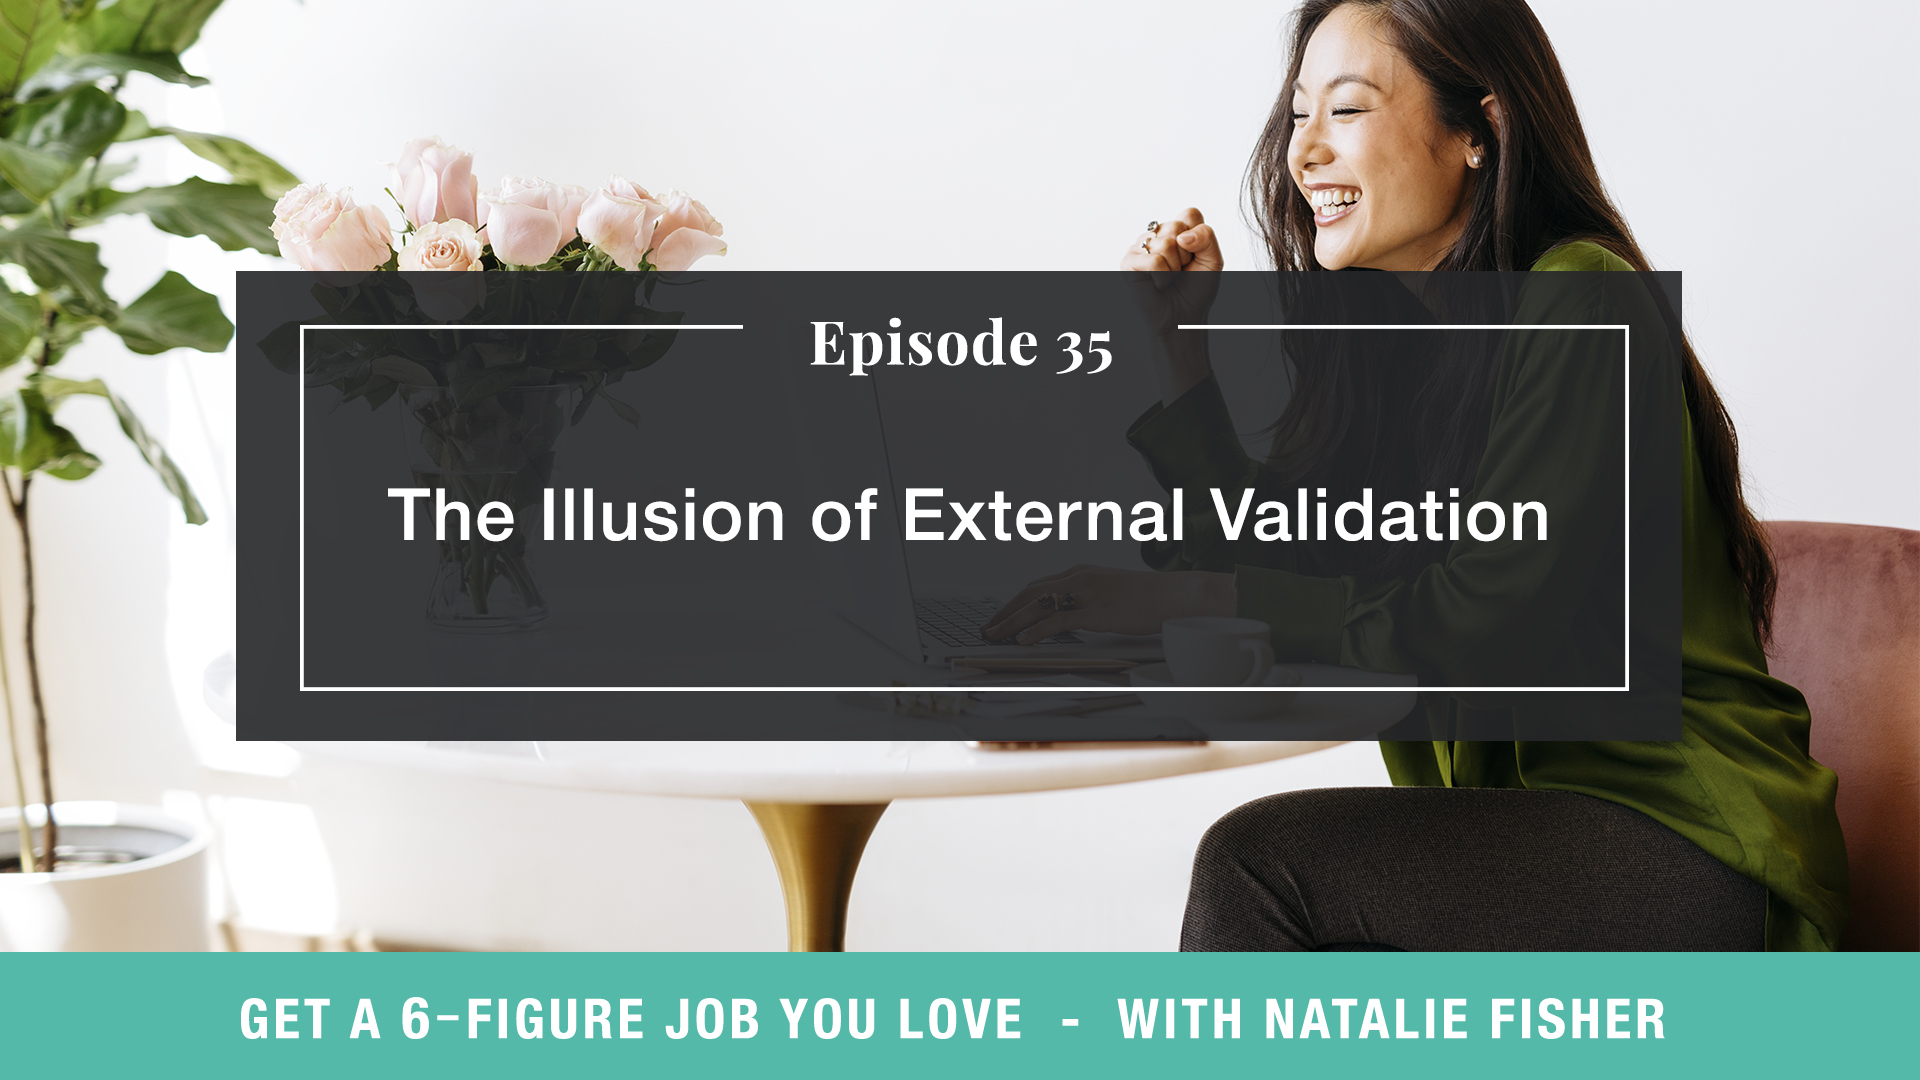 The Illusion of External Validation